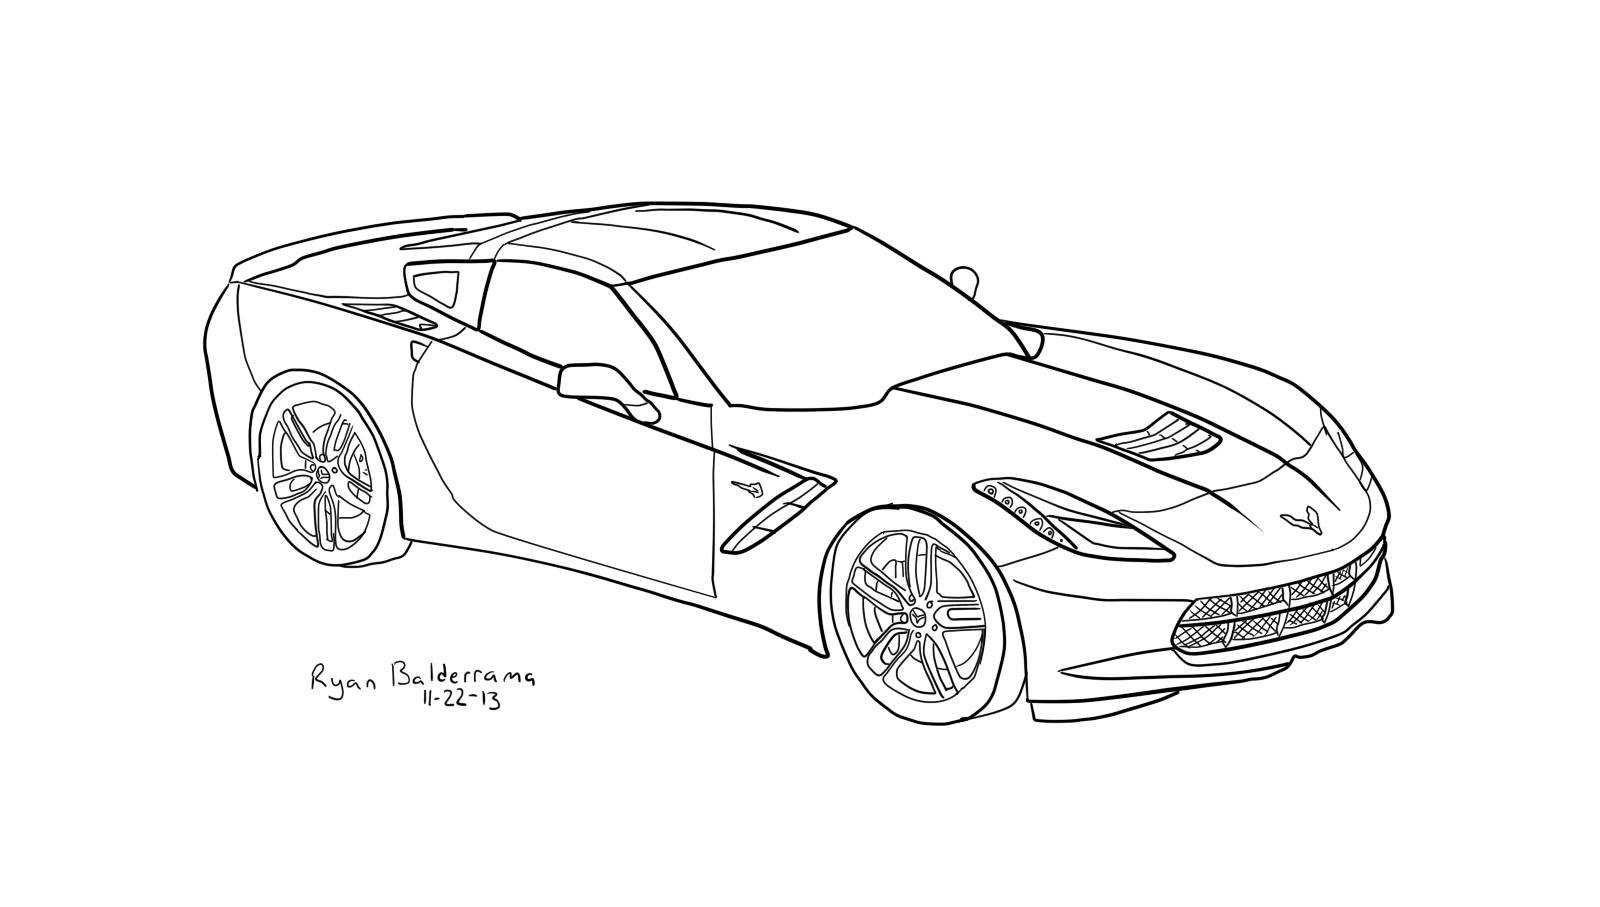 2014 Zr1 Corvette Car Coloring Pages Race Car Coloring Pages Free Printable Coloring Pages For